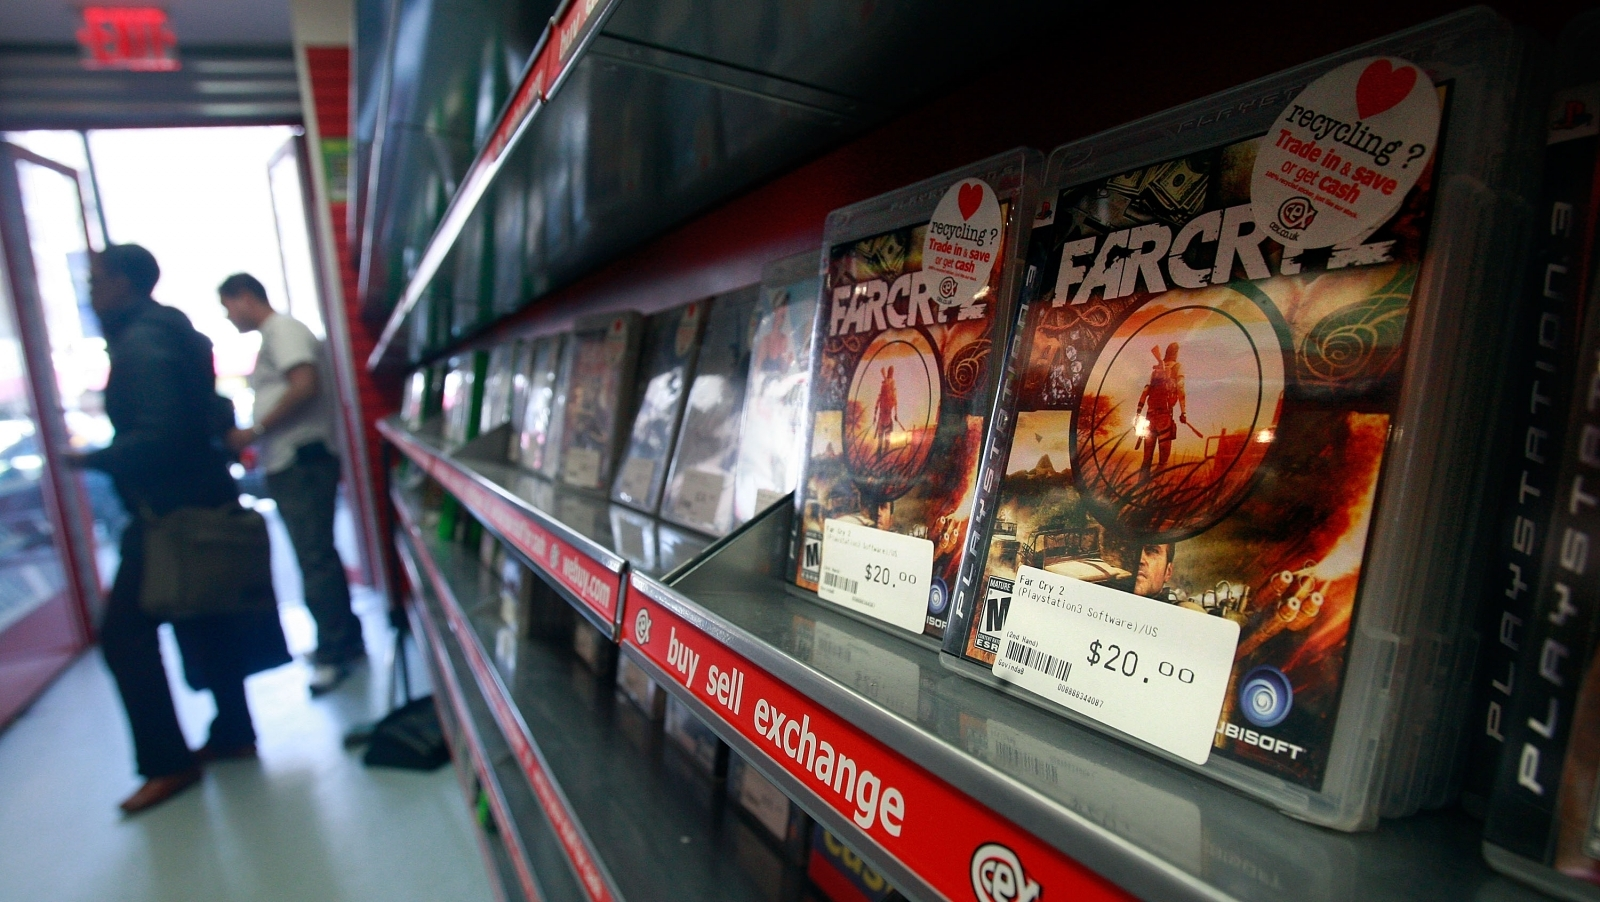 CeX Admits Data Breach Could Impact 2m Online Customers